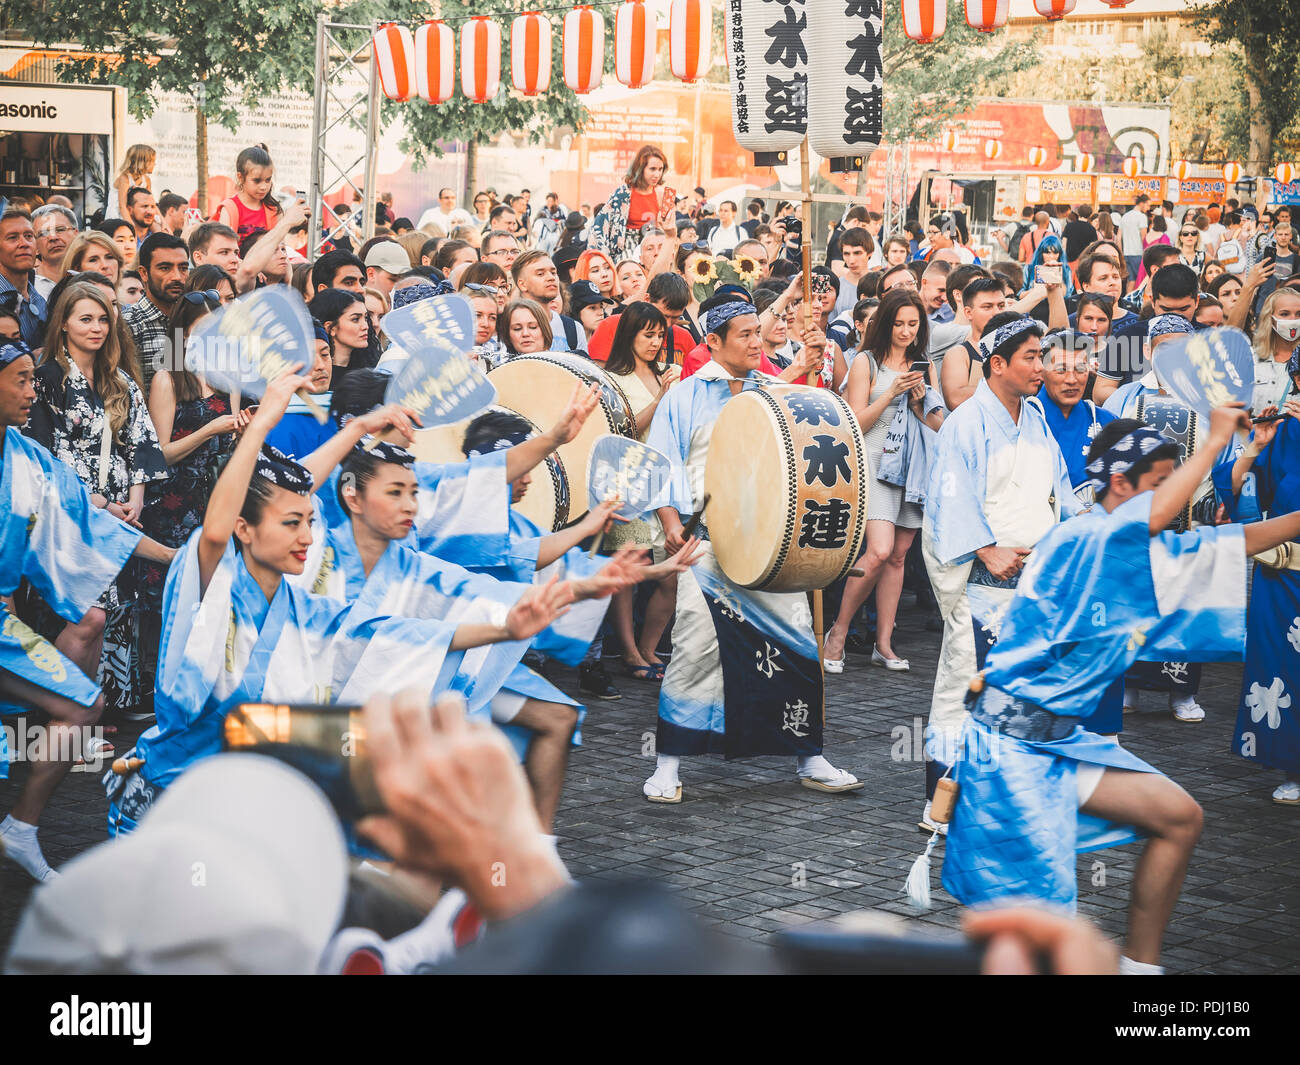 Moscow, Russia - August 09, 2018: Traditional japenese Awa Dance. Dancers perform the Bon Odori dance, musicians in blue kimono with big drum odaiko d Stock Photo